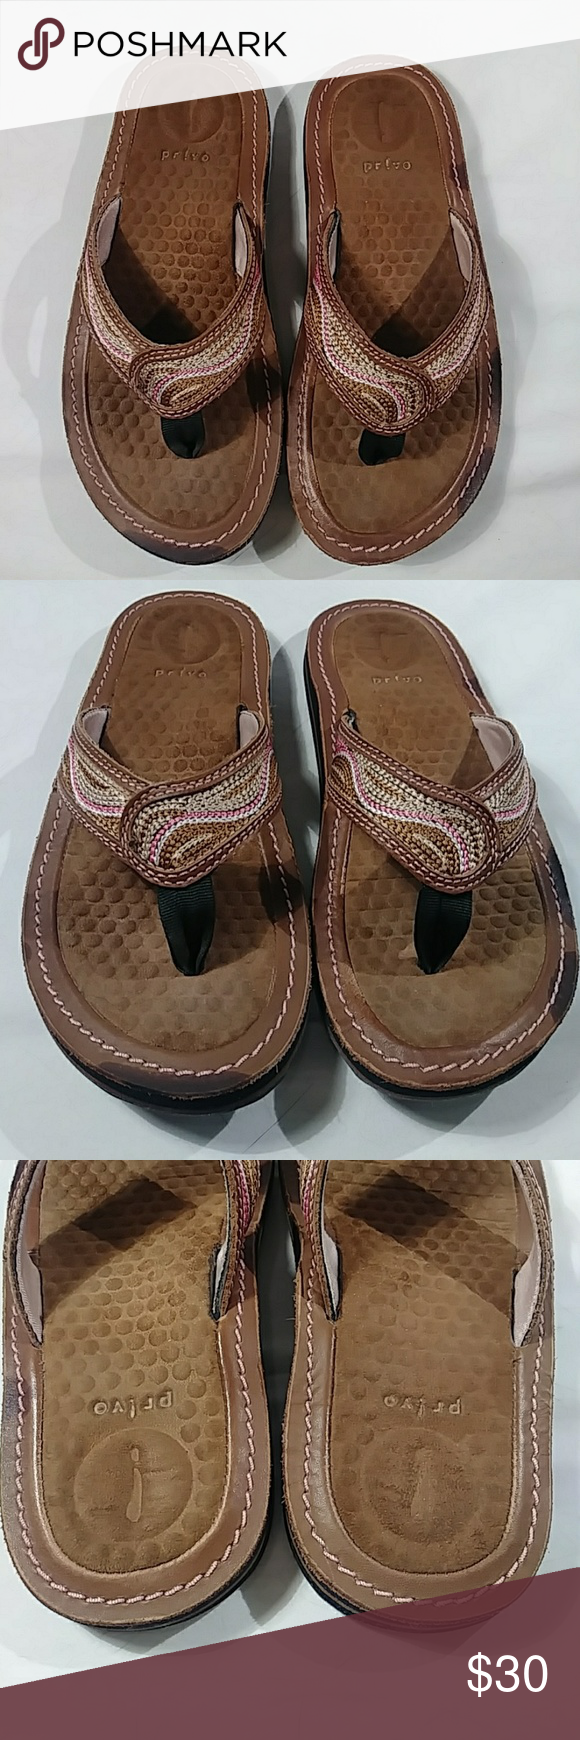 da56d6d338d6 Privo Clark Fli flops Privo flip flop Clark in brown with pink and beige  accent strapping